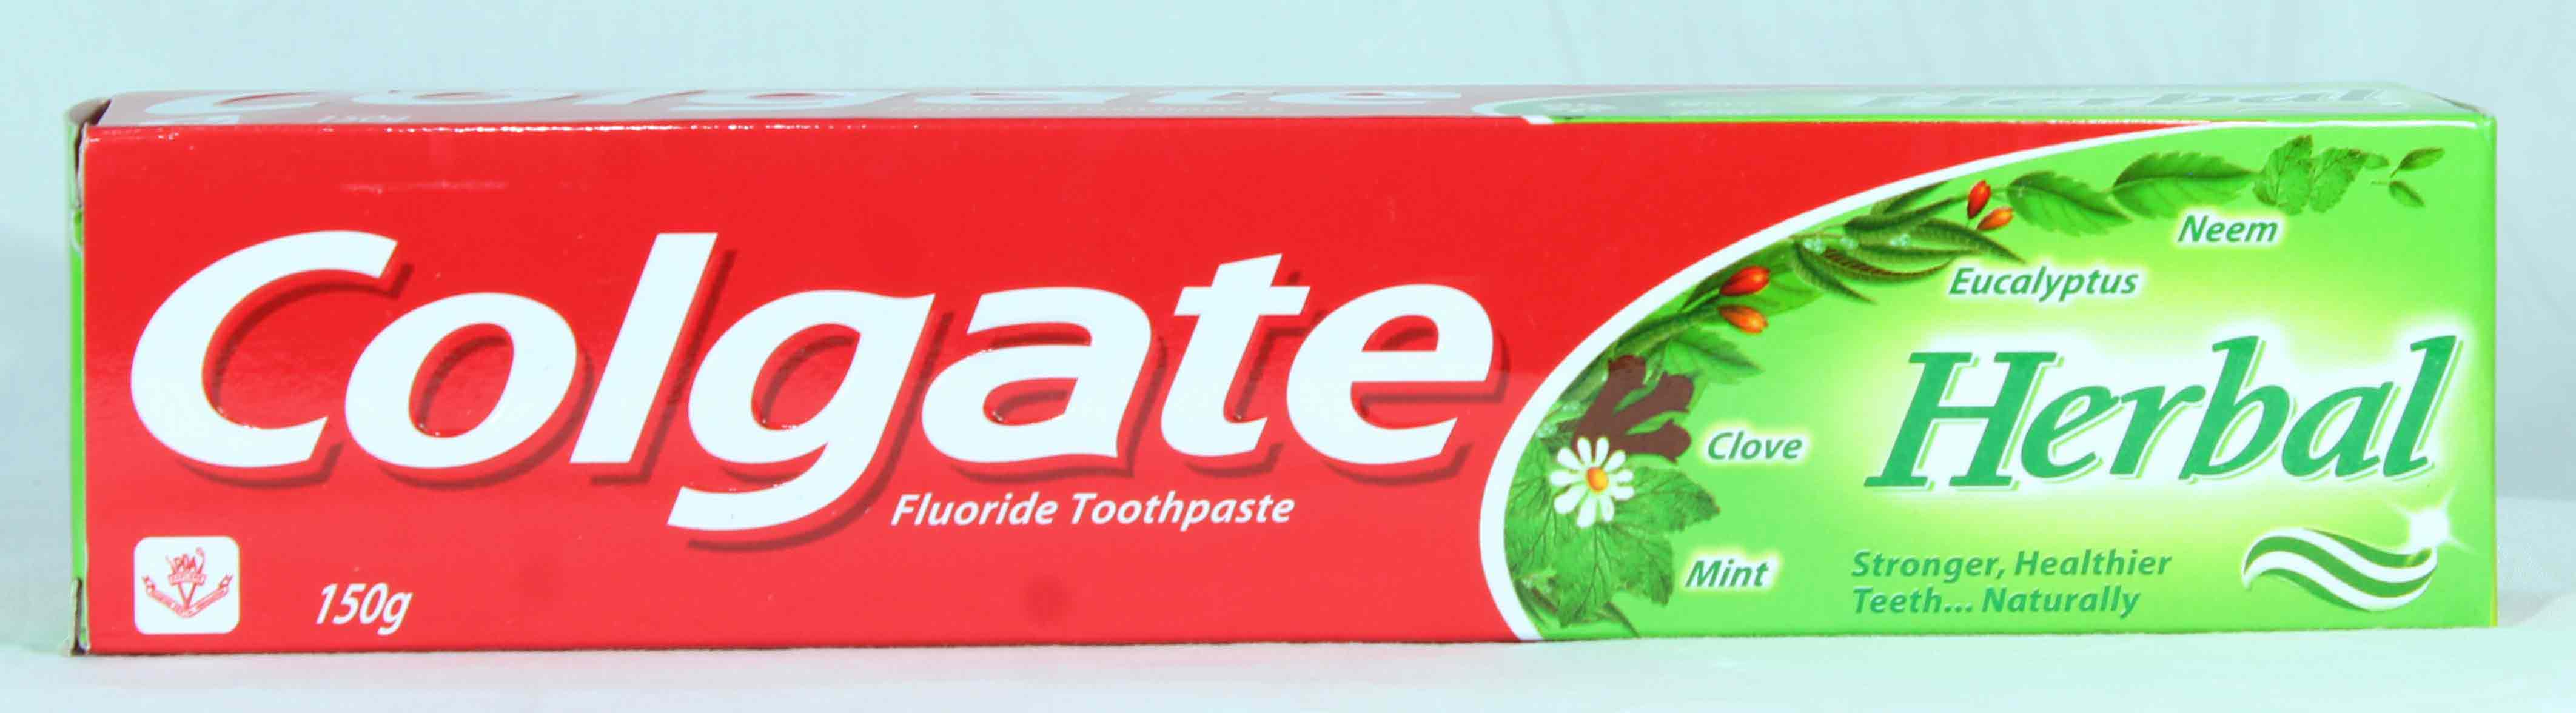 Colgate Herbal Mint Tooth Paste 150gm